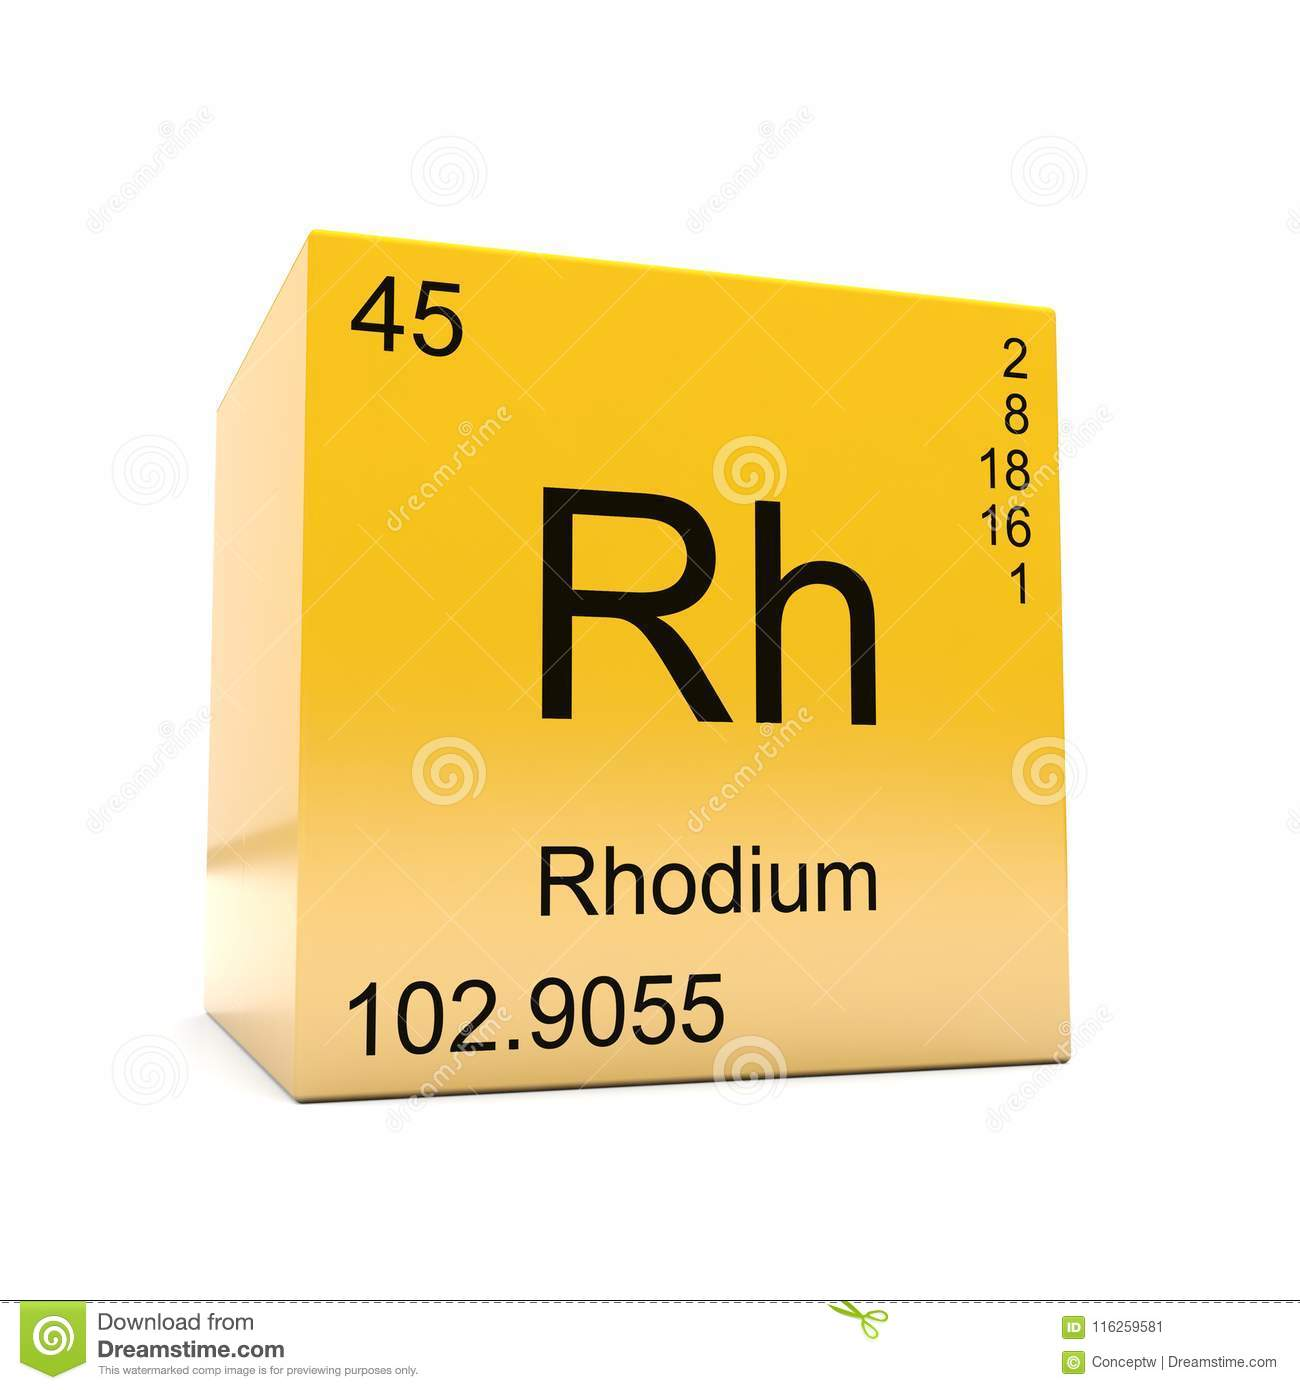 Rhodium Chemical Element Symbol From Periodic Table Stock